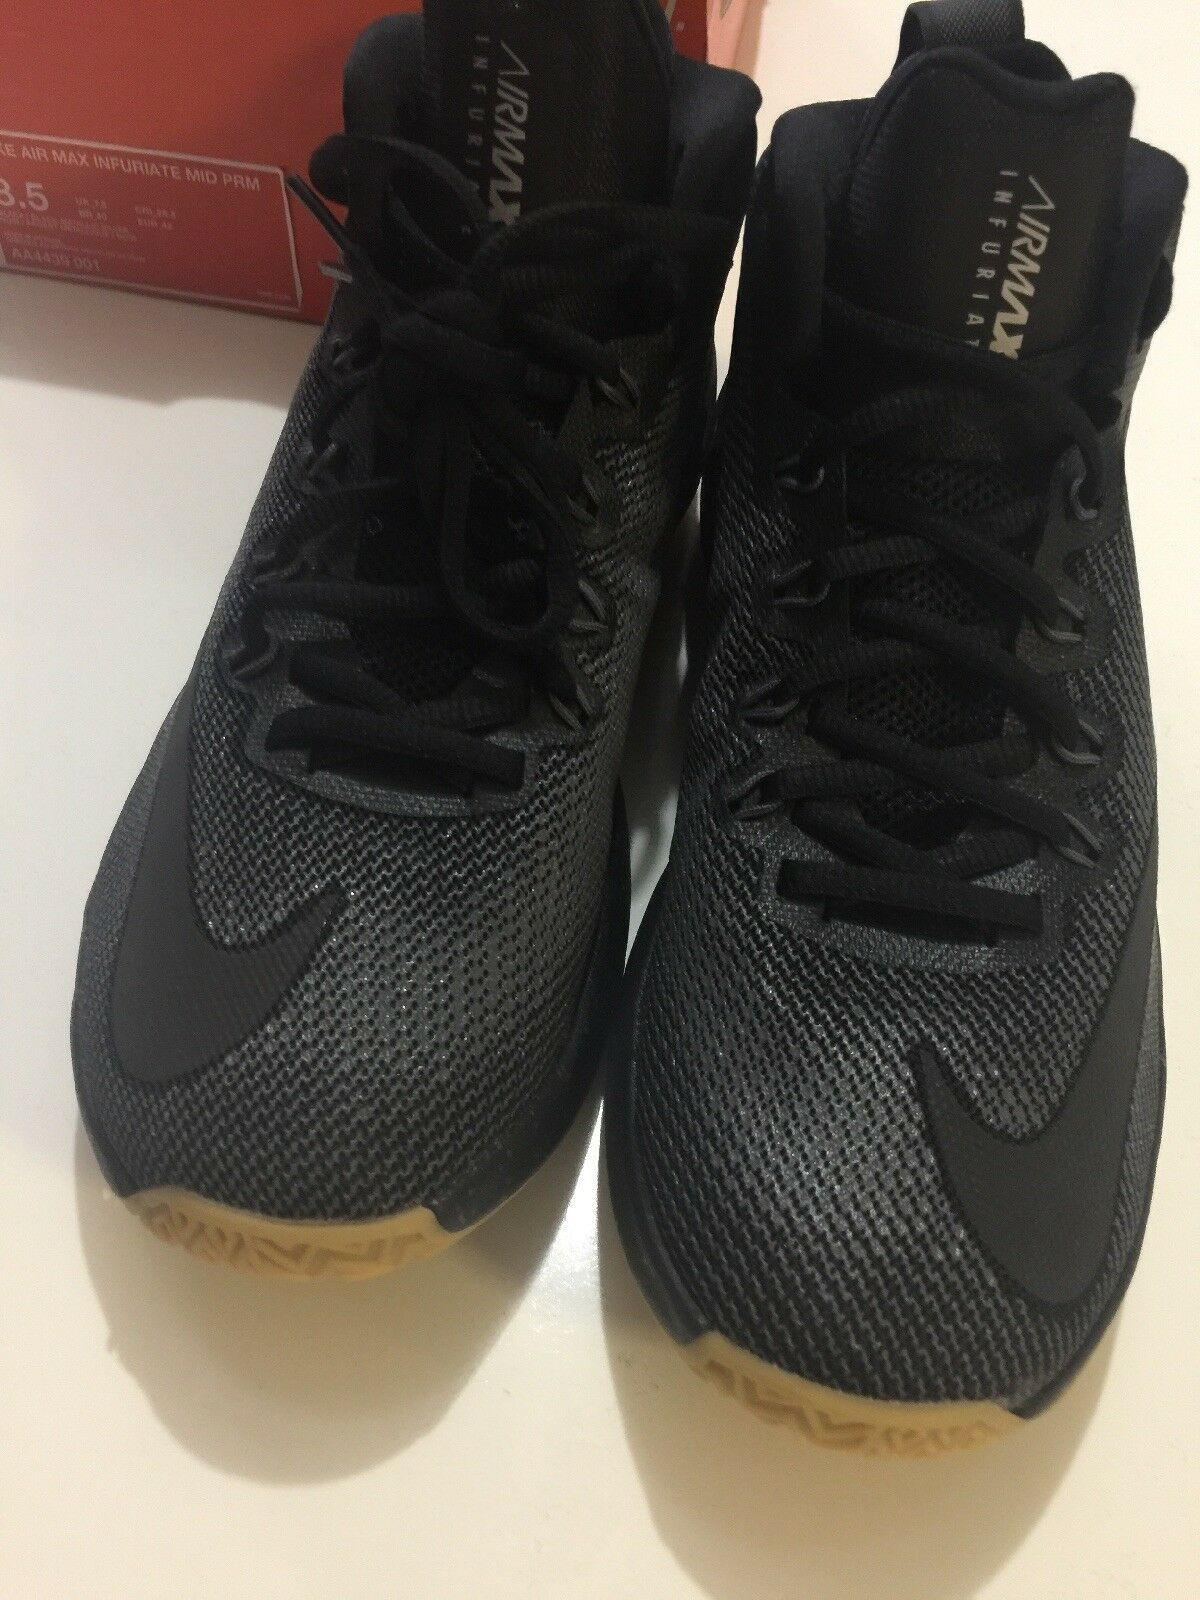 NIKE AIR MAX INFURIATE MID PRM MENS SHOES AA4439 001 Size 8.5 WITH BOX No Top image 2